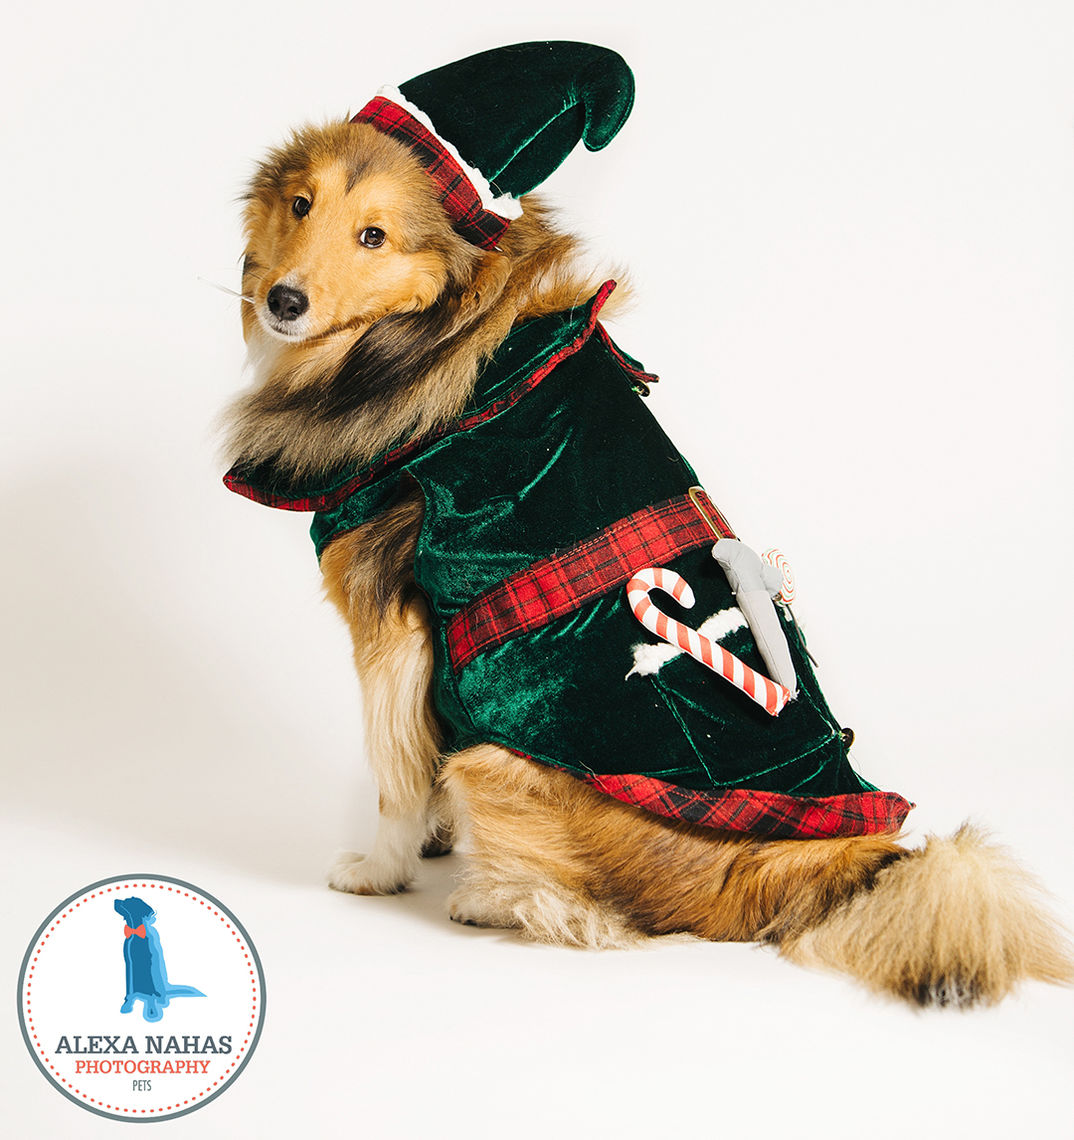 Photo: The 12 Dogs of Christmas